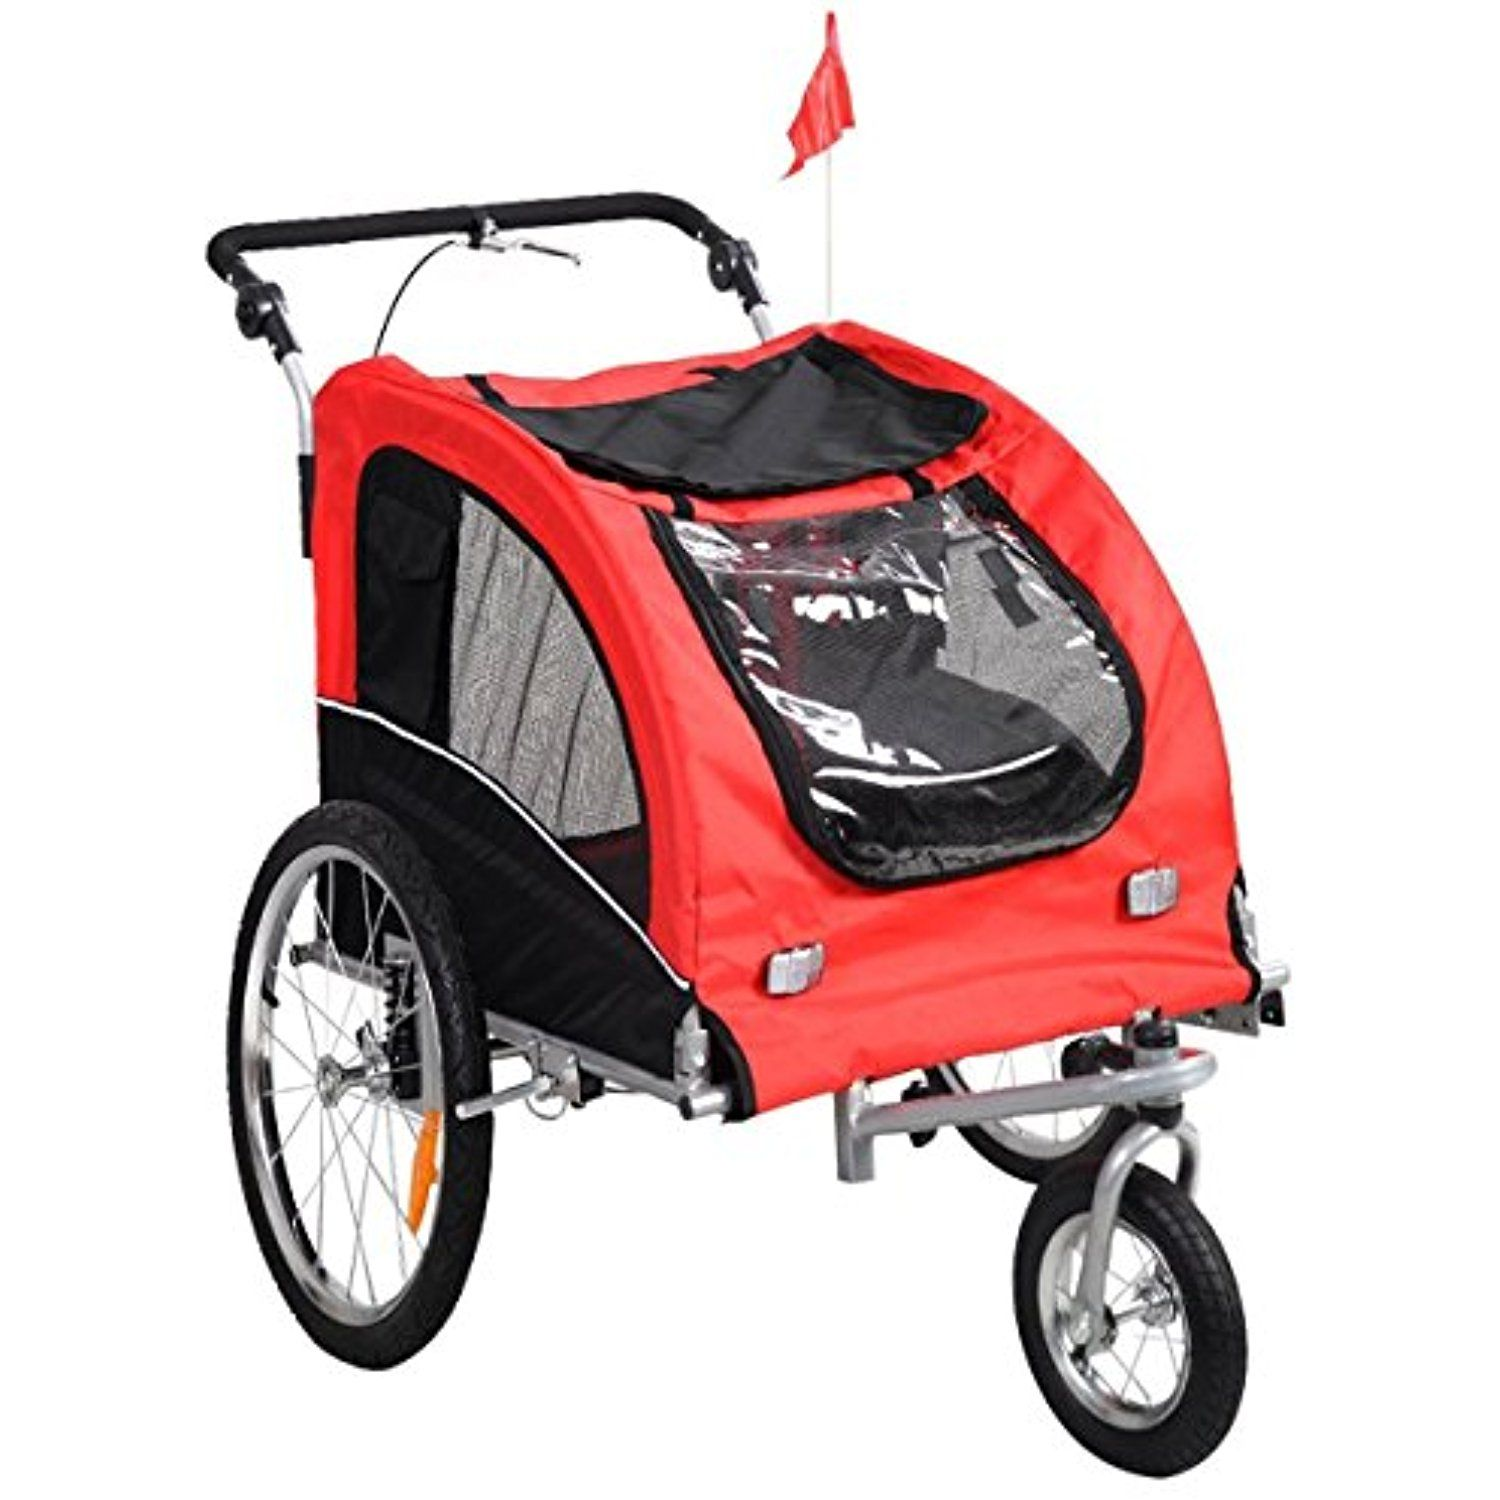 Baby Pet Stroller Jogger Bike Strollers Bicycle Carry Wheels Jogging Ride Dog